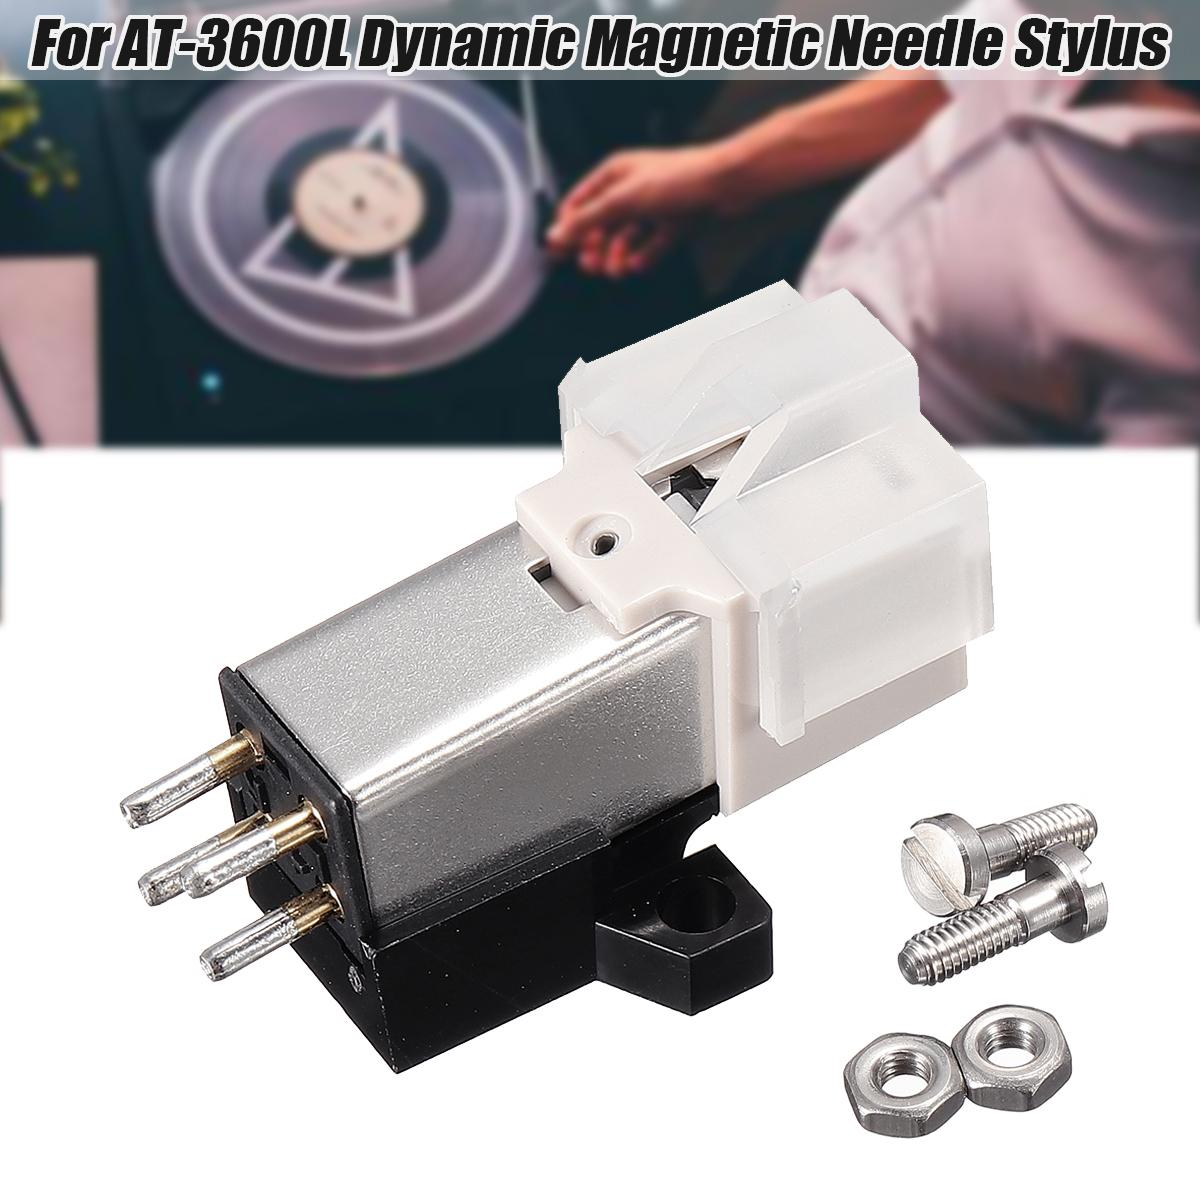 【Free Shipping + Super Deal + Limited Offer】AT-3600L Dynamic Magnetic  Needle Stylus FOR Audio Technica Record Player Metal